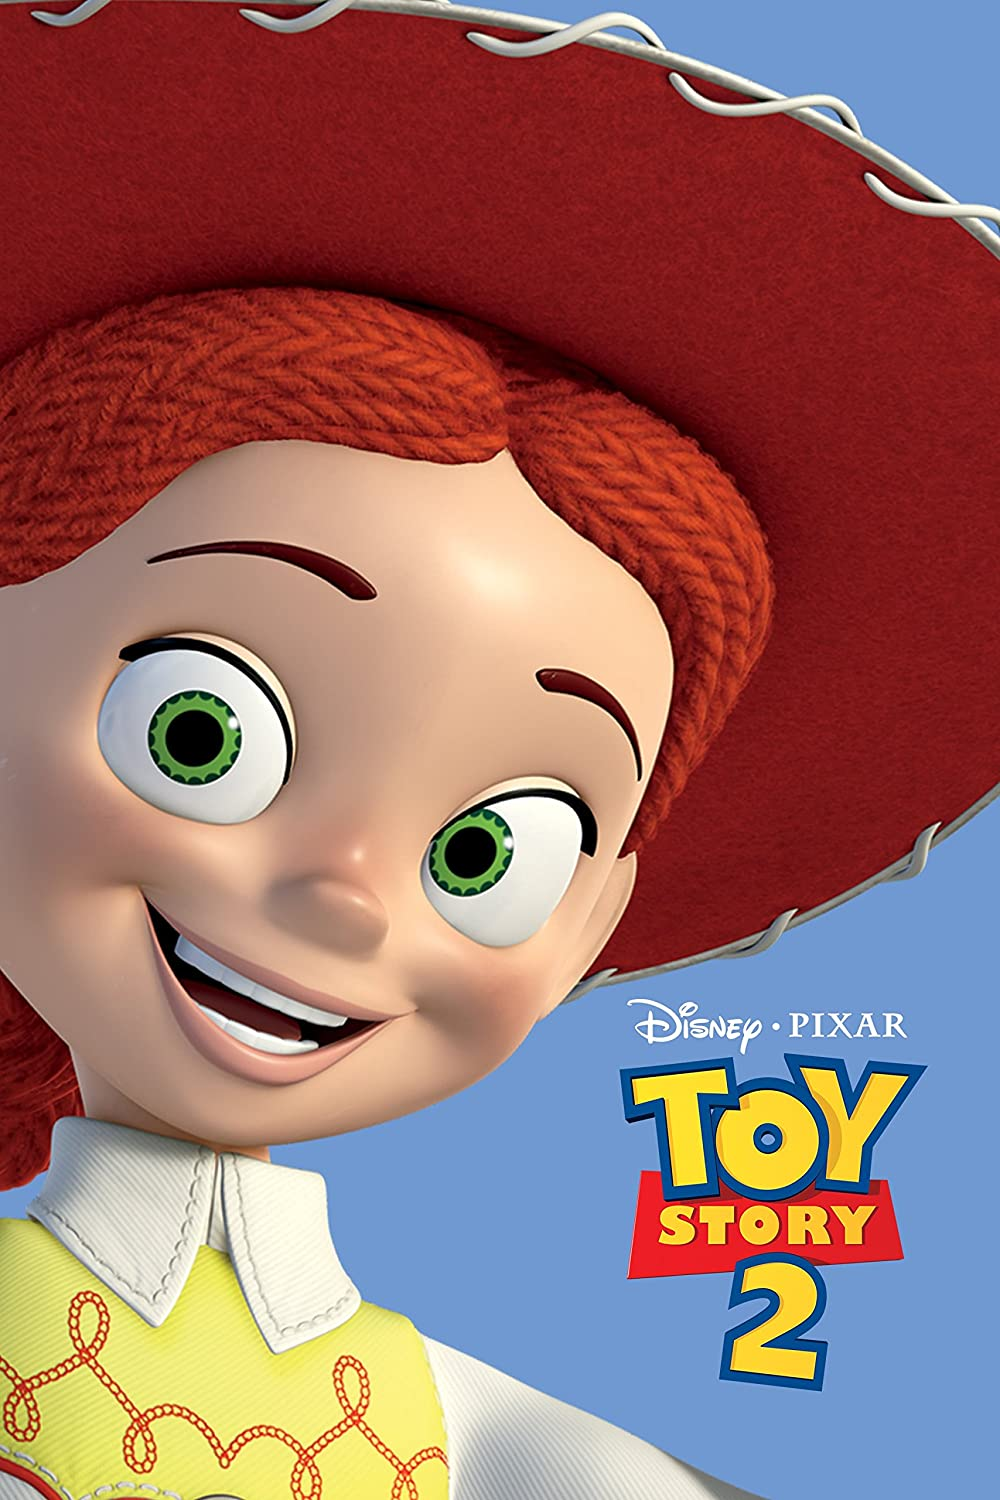 Black Creations Toy Story 2 – 2 Movie Poster Canvas Picture Art Print Premium Quality A0 A1 A2 A3 A4 (A0 Canvas (30 40))